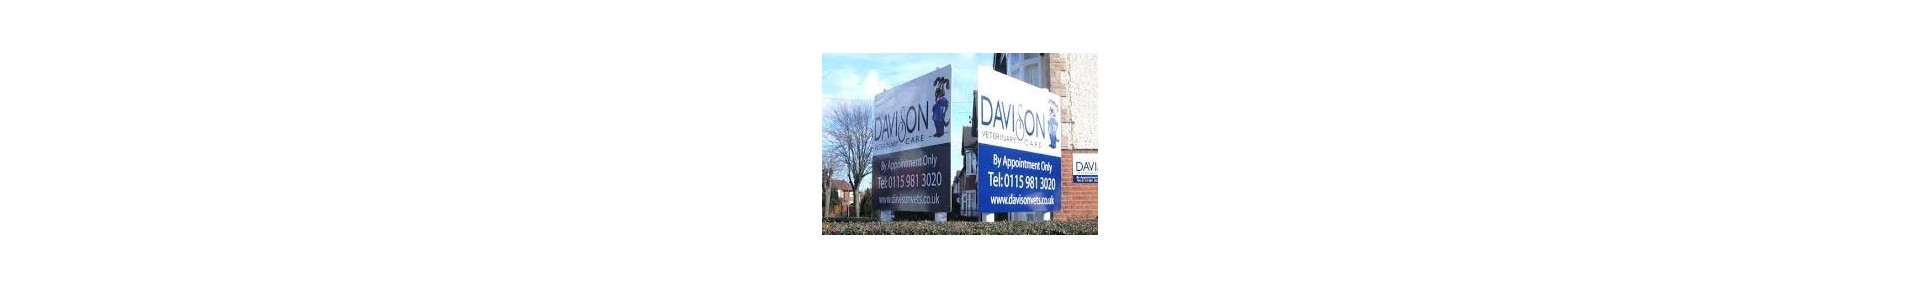 Post and Panel Signs, Business Signs, Architectural Signage | Hooks &